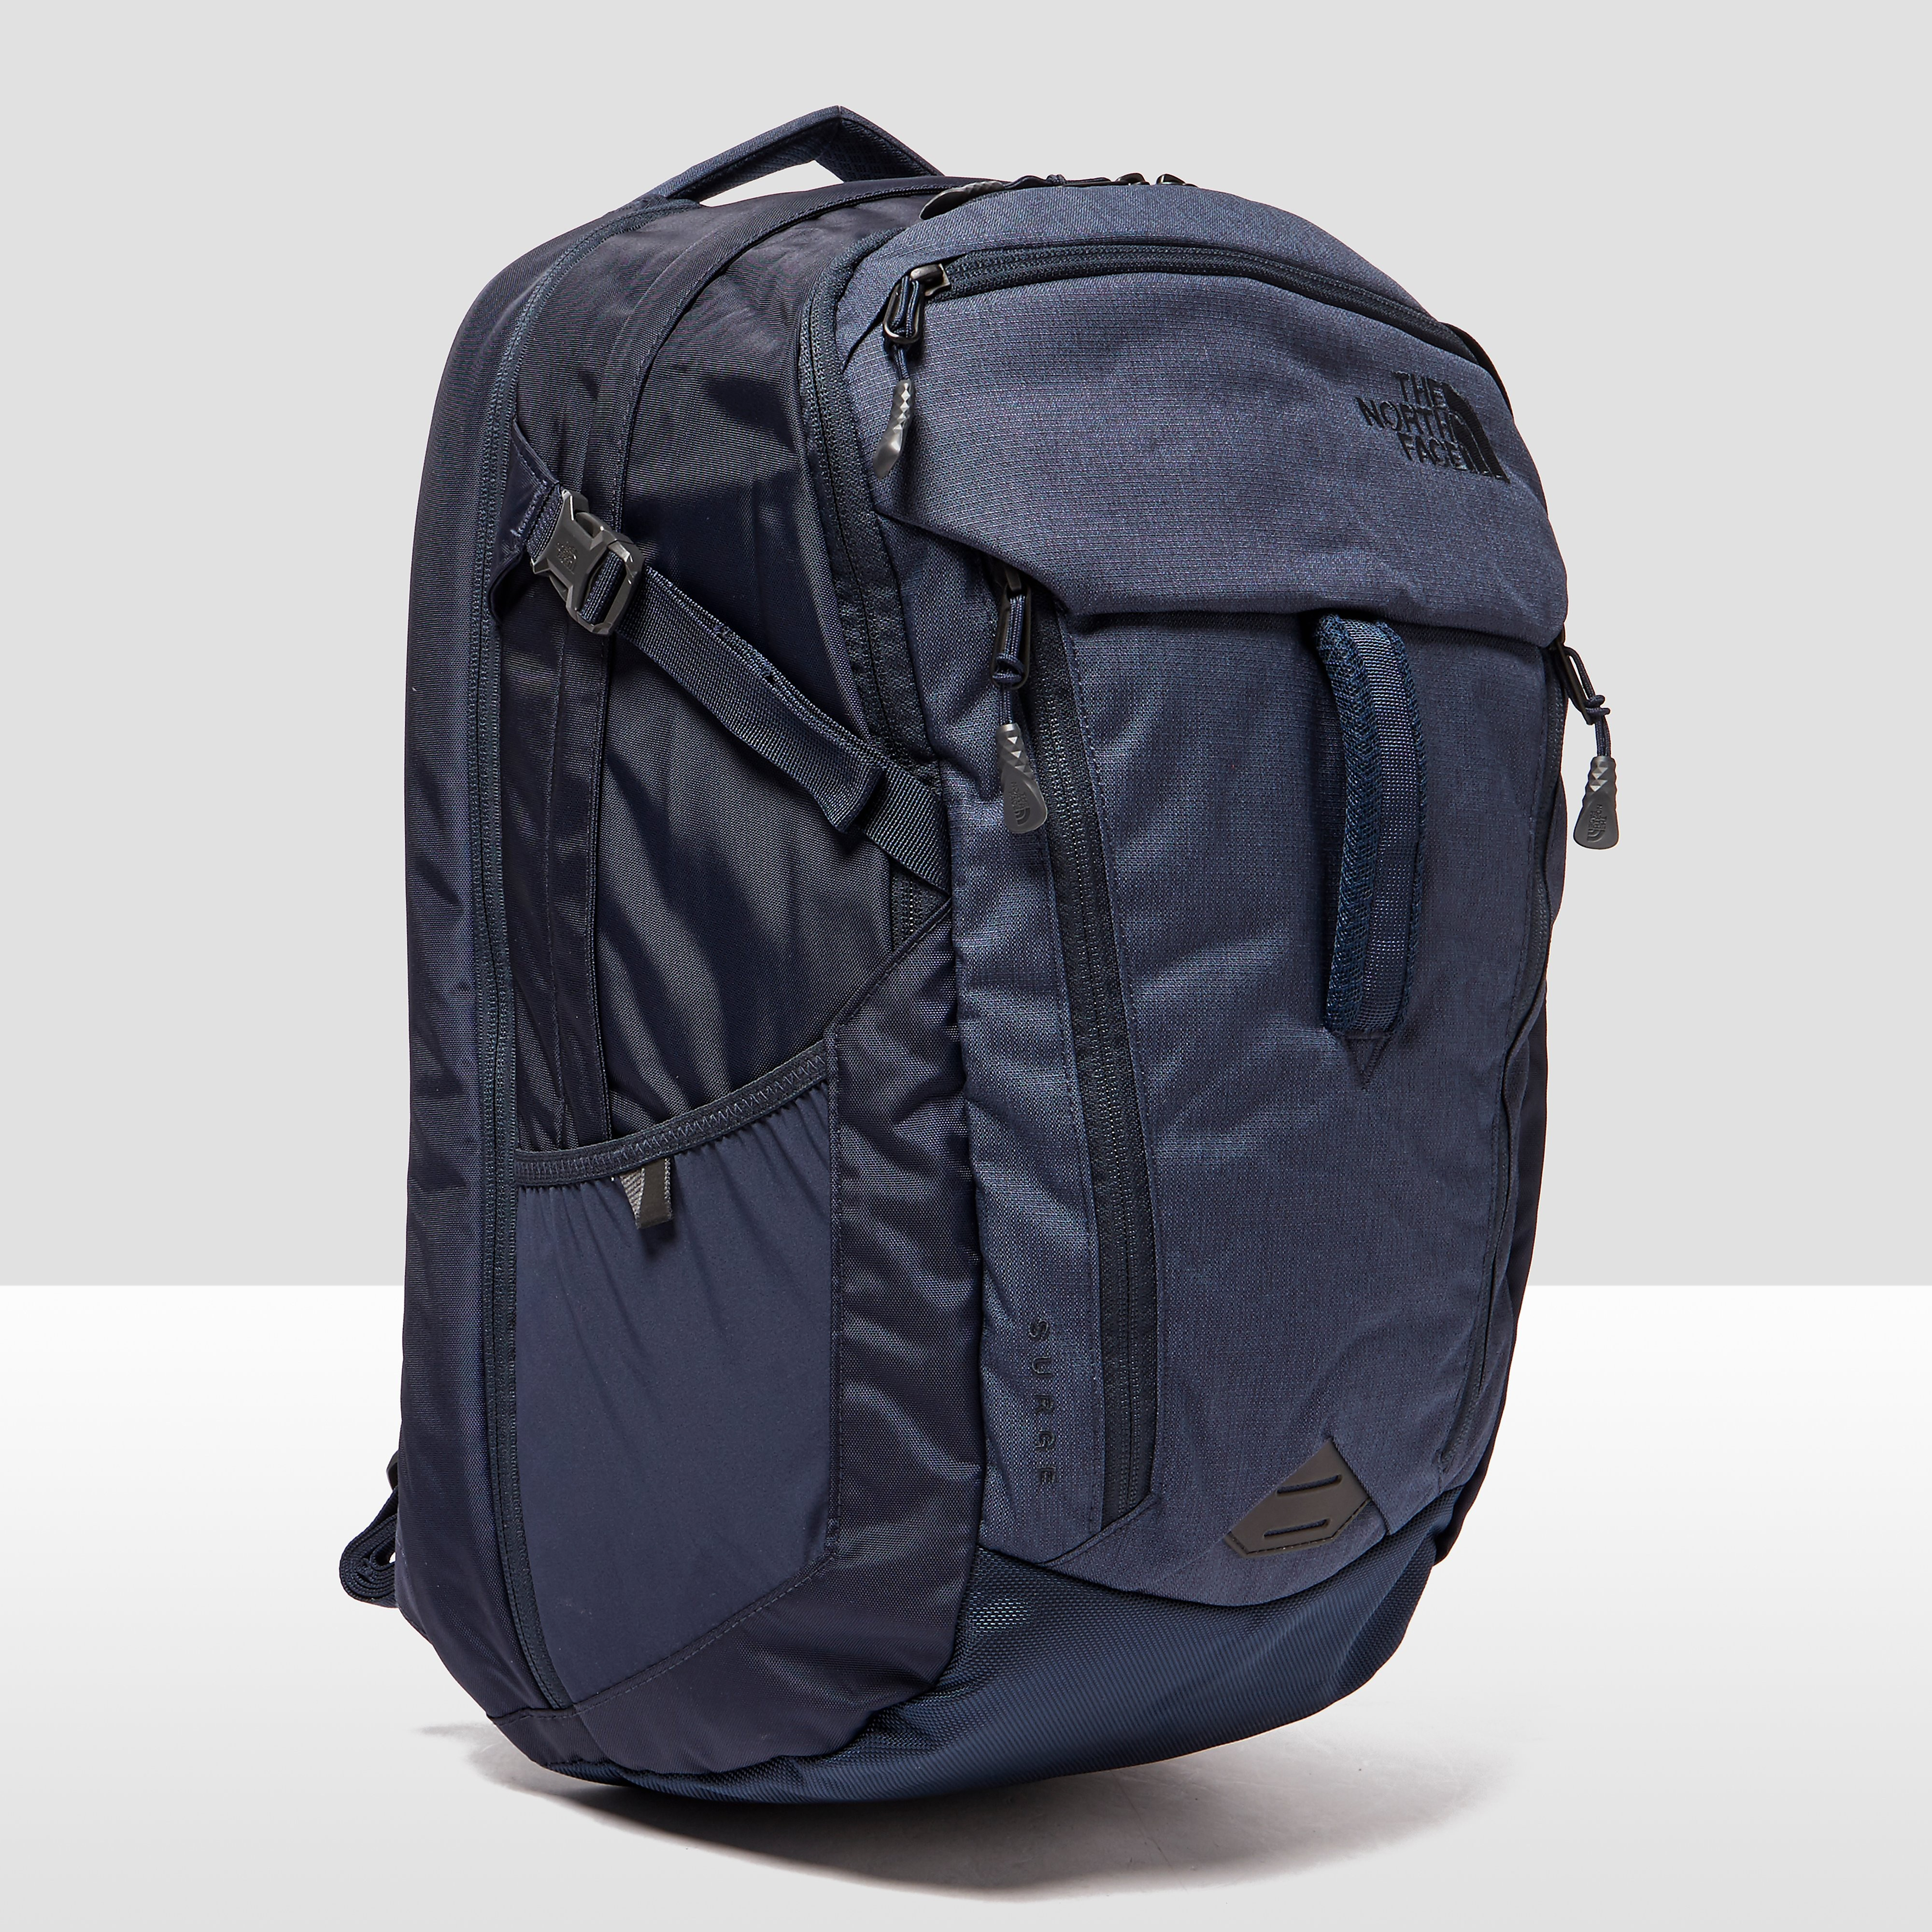 The North Face Unisex Surge Backpack